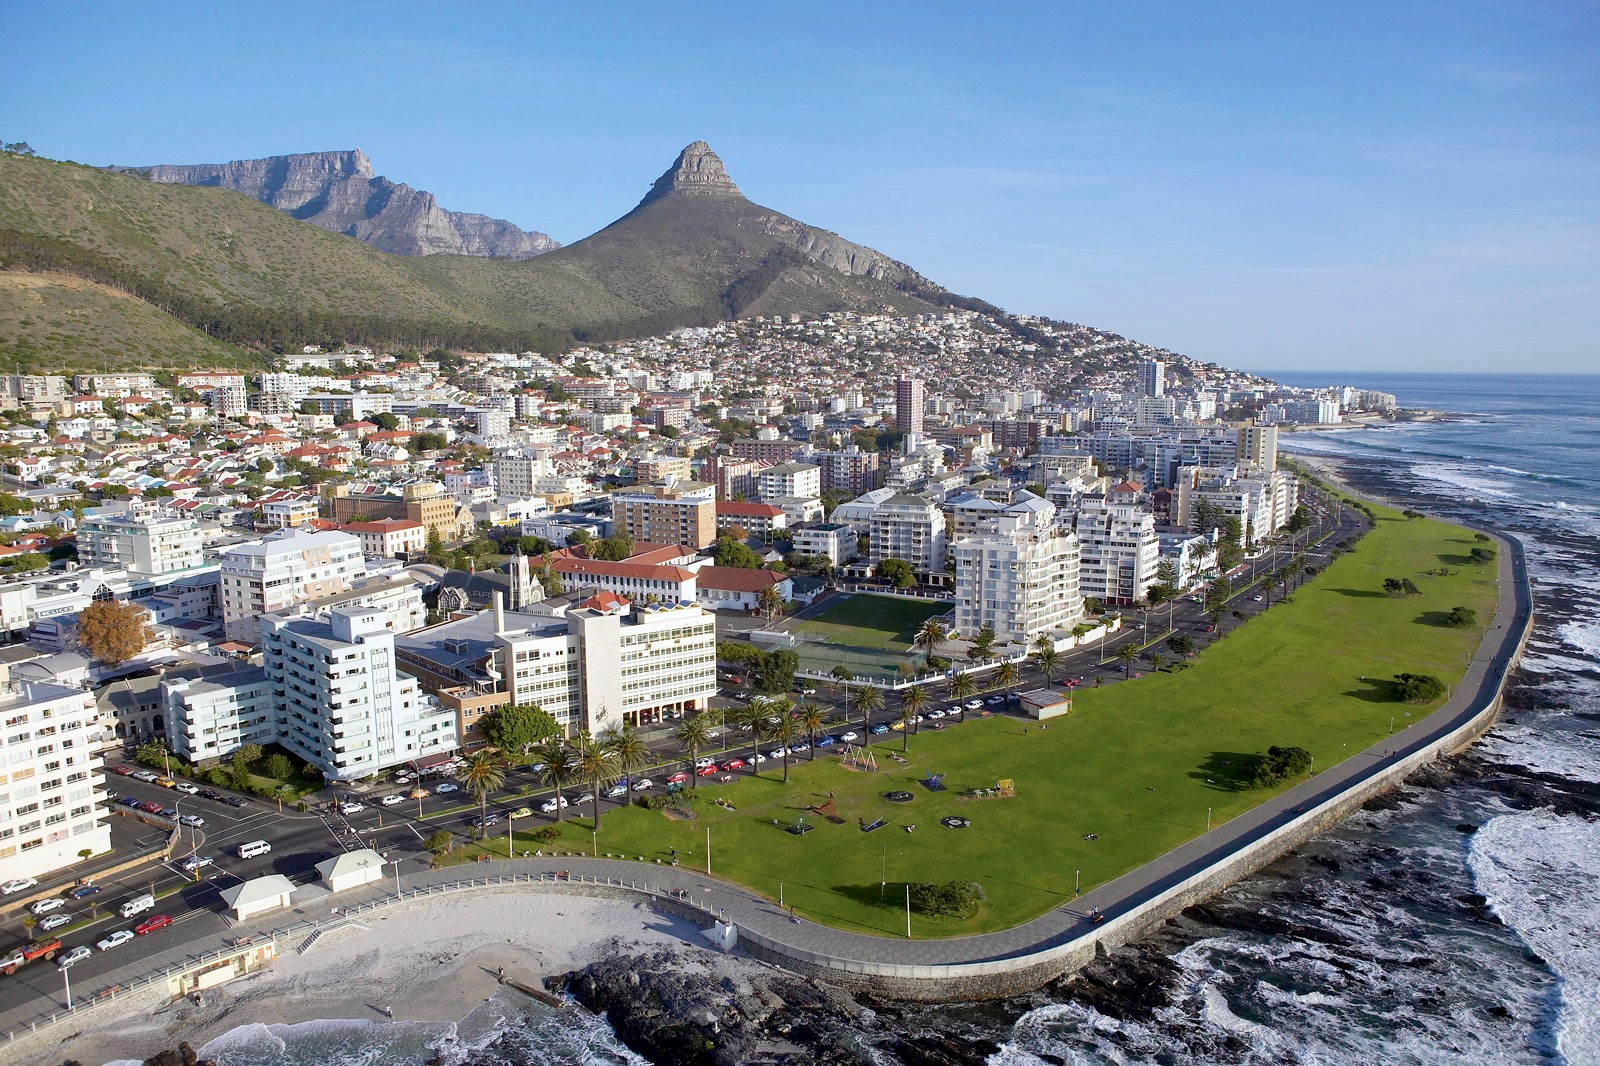 Description Aerial View of Sea Point, Cape Town South Africa.jpg